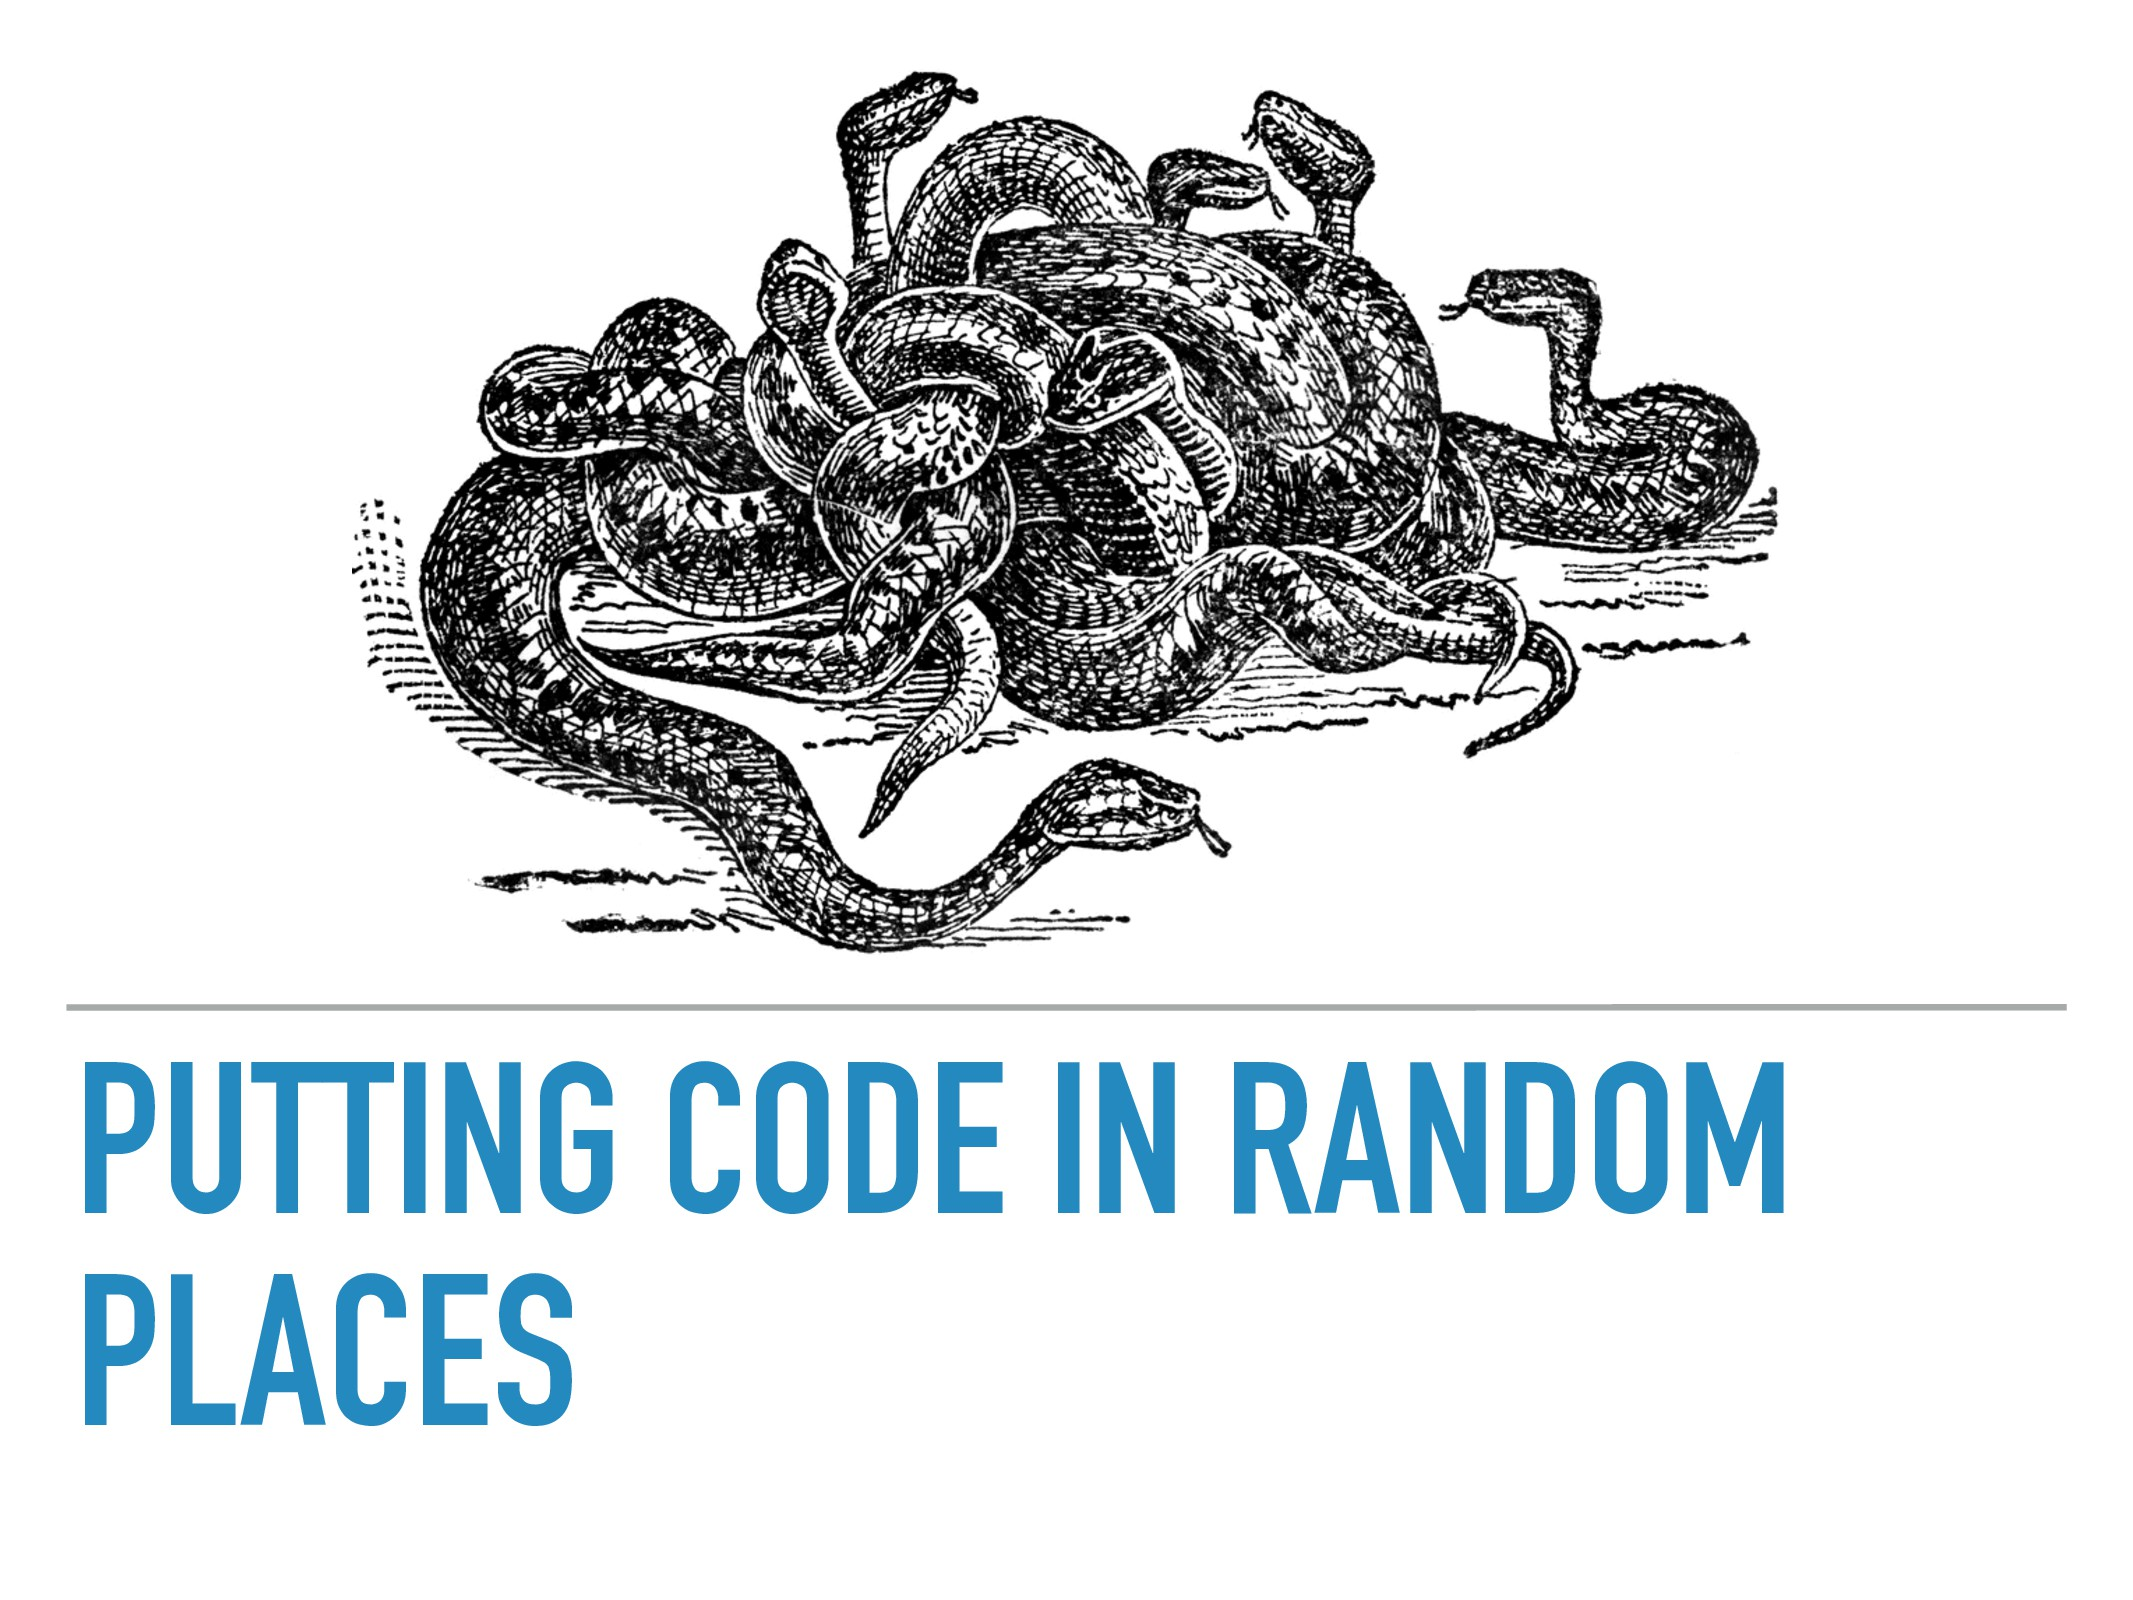 PUTTING CODE IN RANDOM PLACES